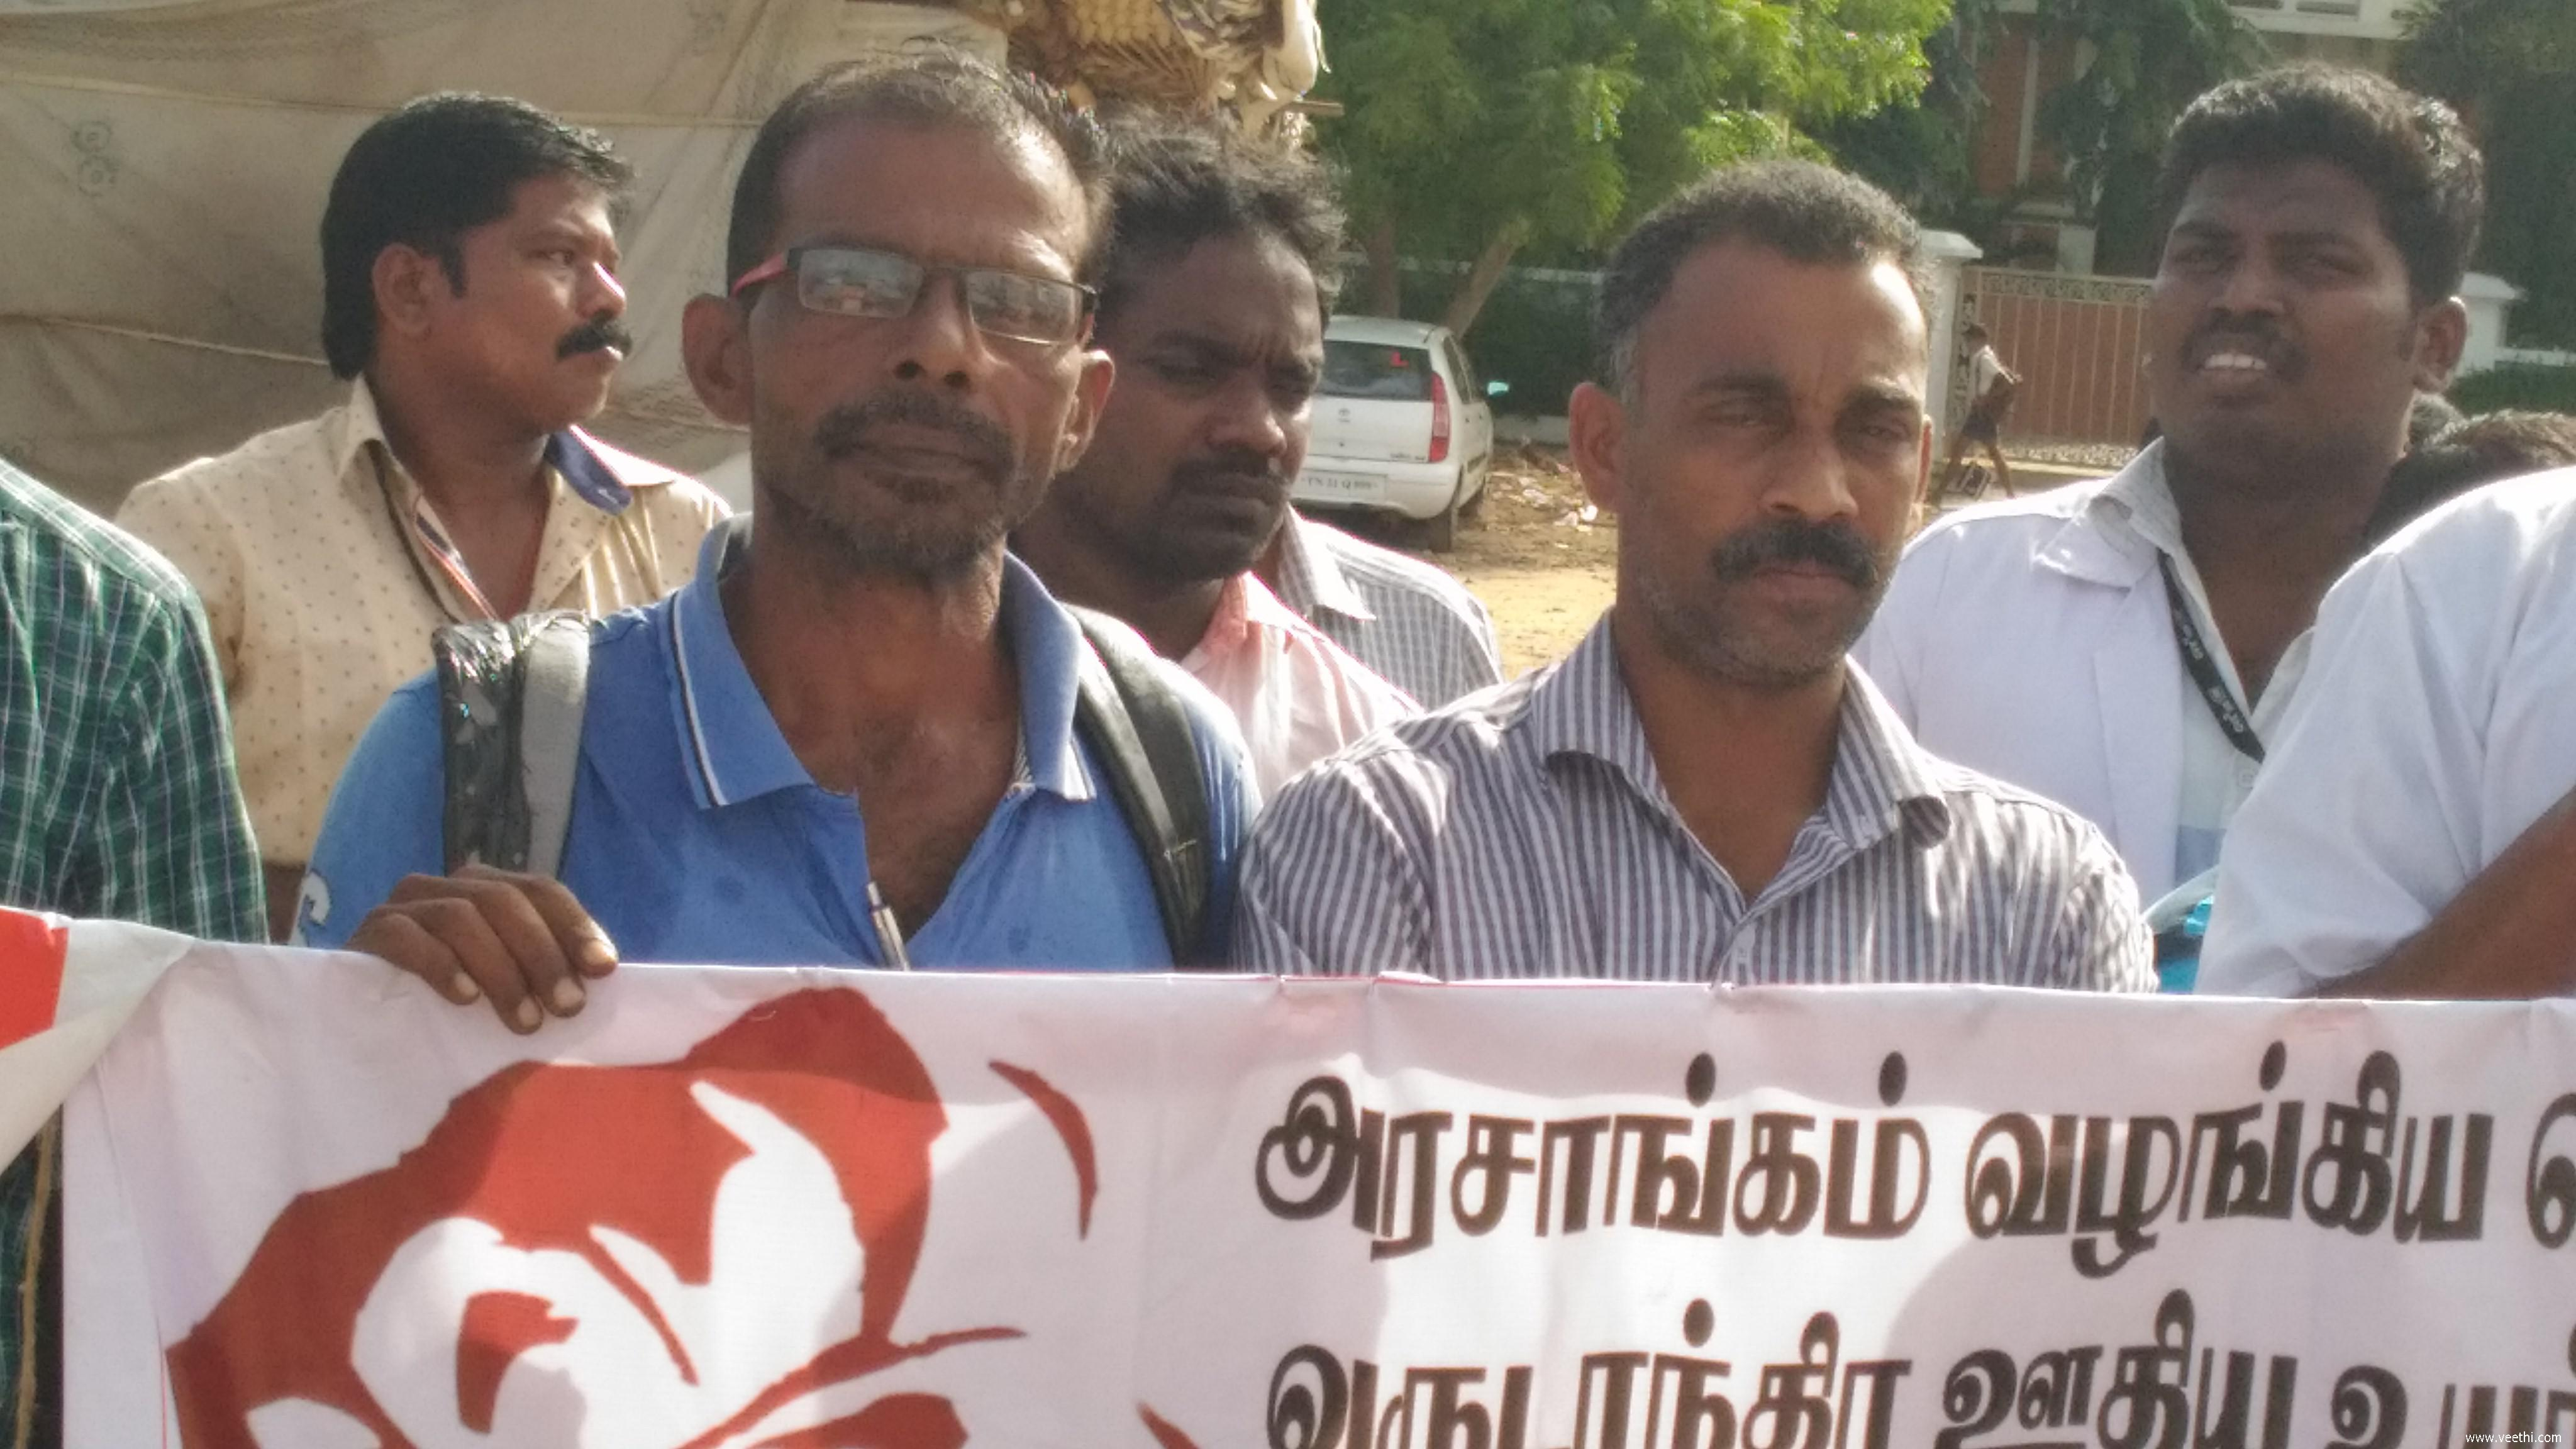 Tirunelveli District 108 Ambulance Workers Strike